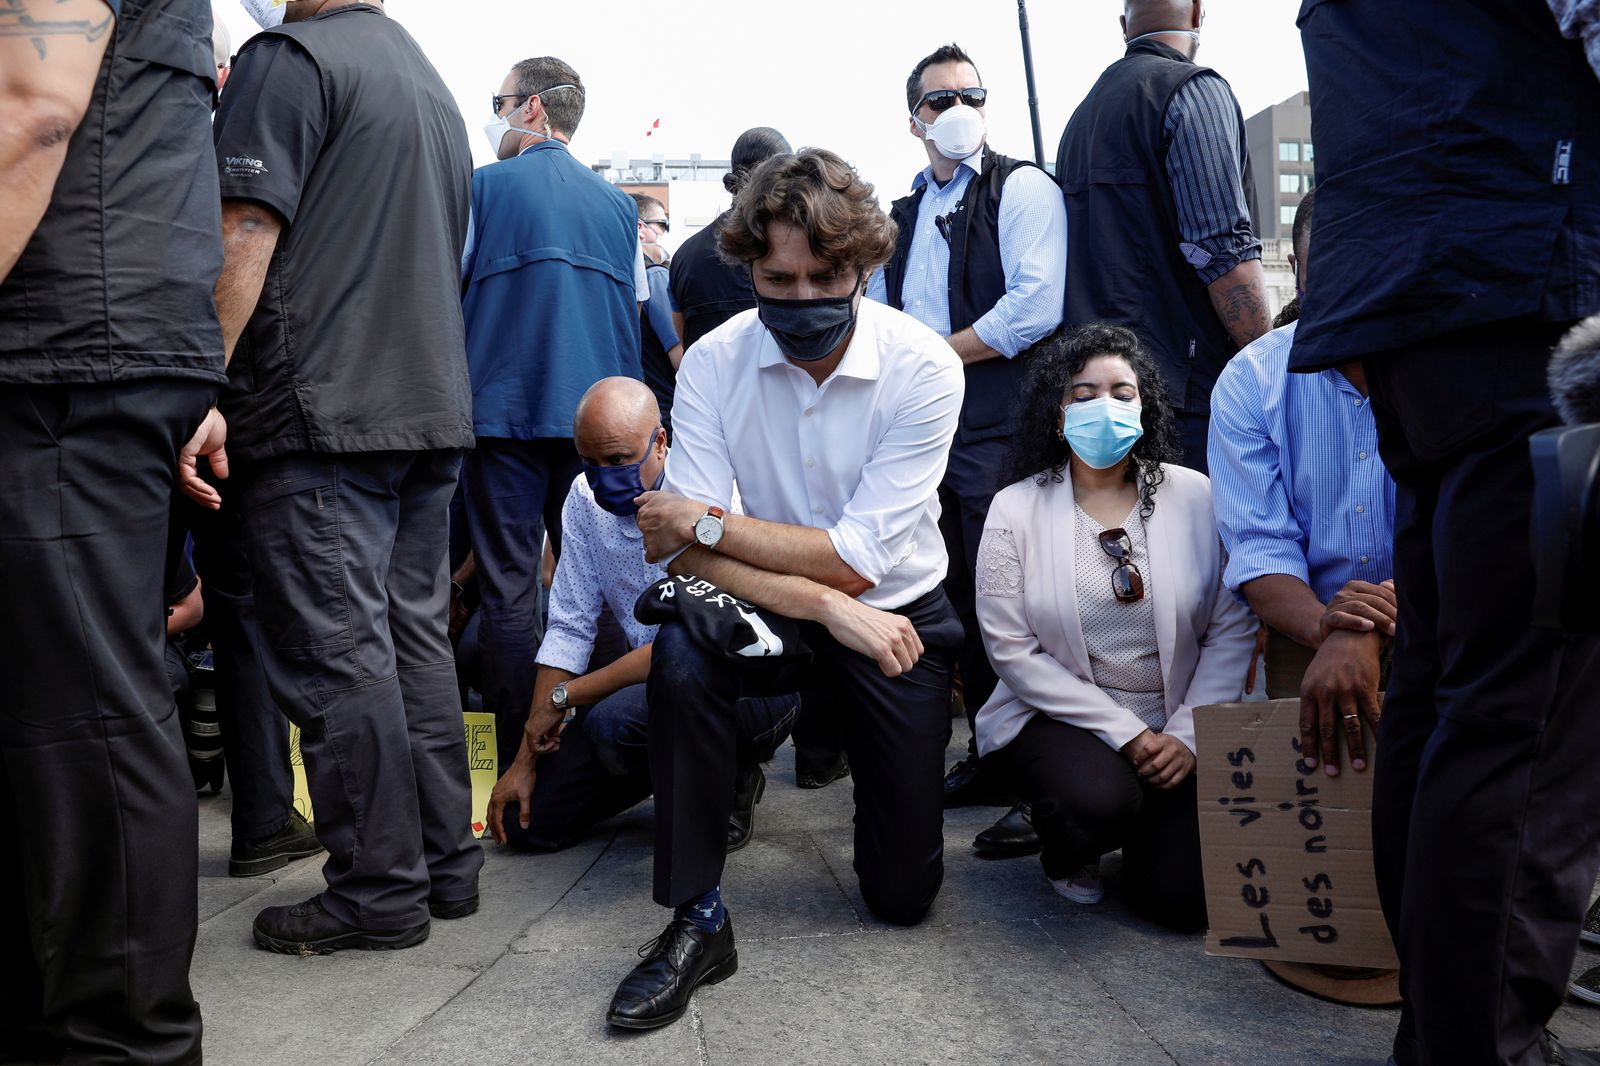 Canada's Prime Minister Justin Trudeau wears a mask as he takes a knee during a rally against the death in Minneapolis police custody of George Floyd, on Parliament Hill, in Ottawa